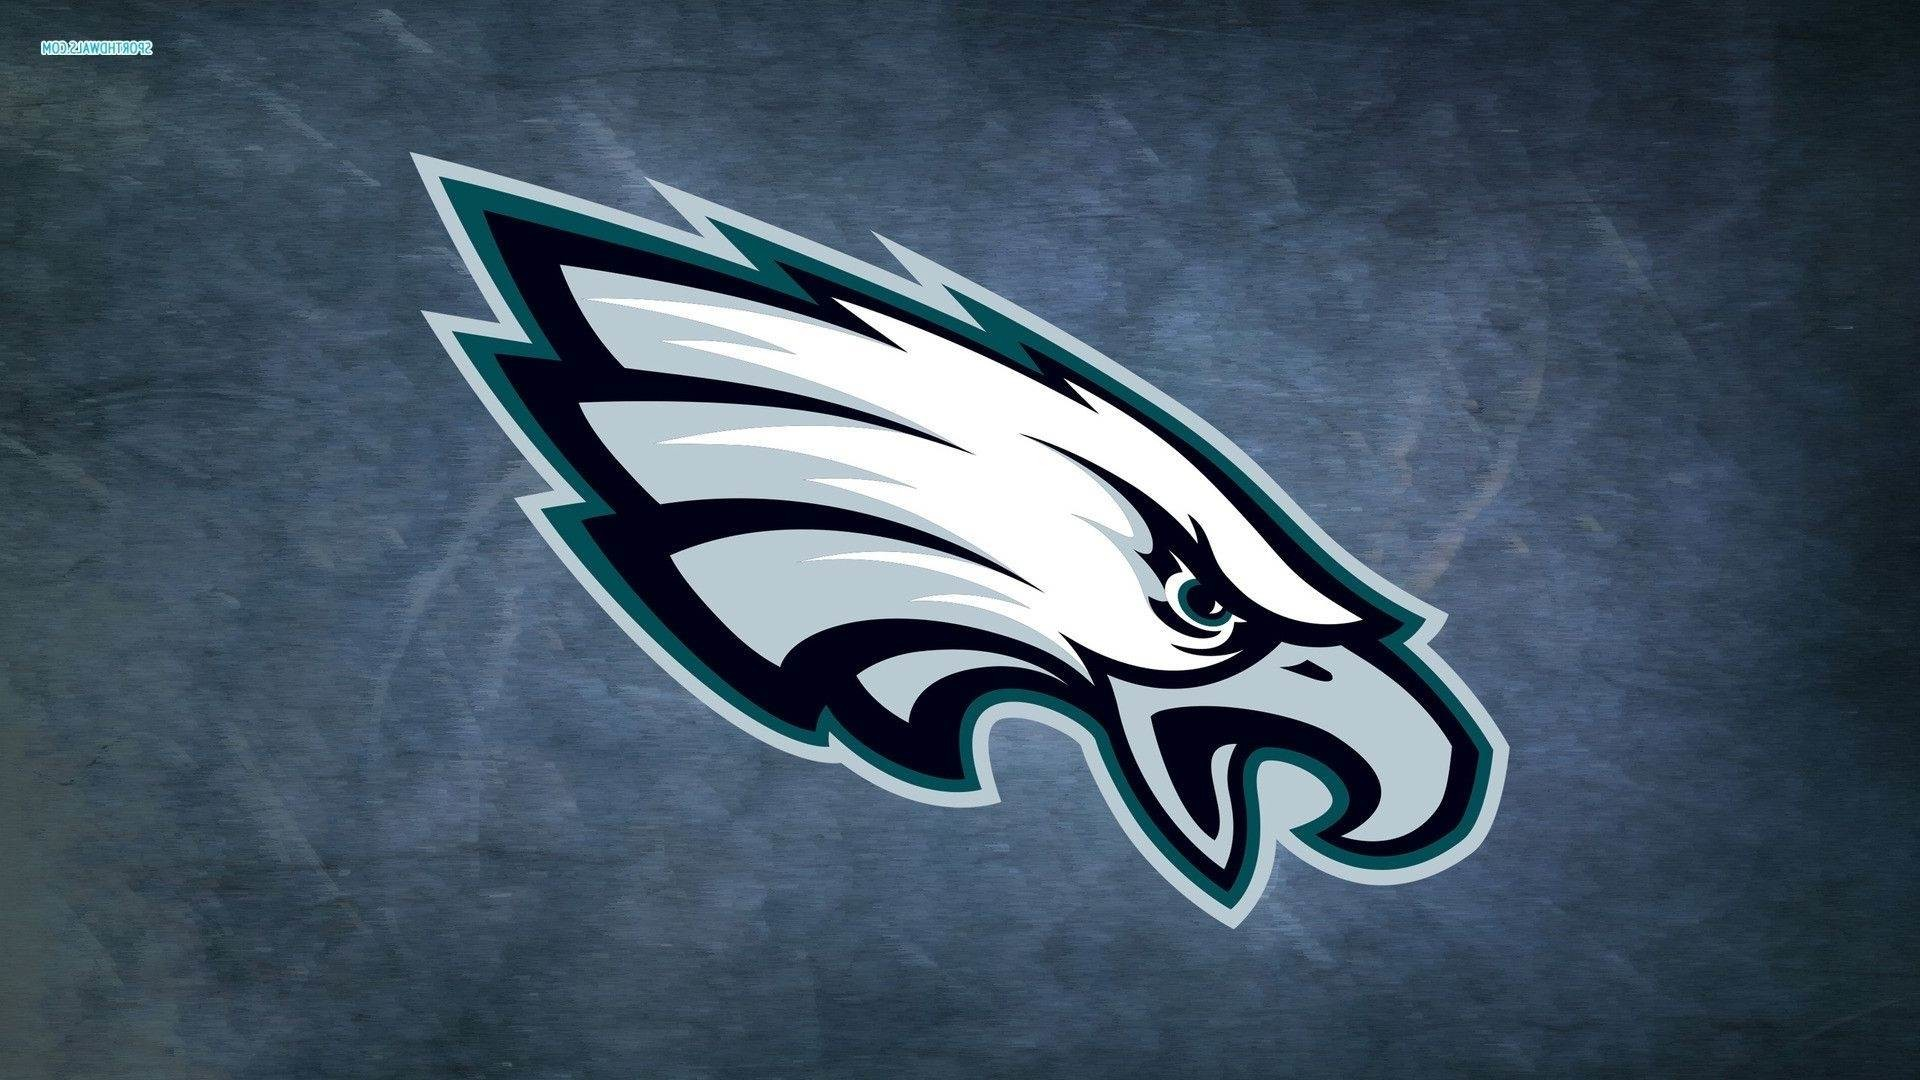 1920x1080 Philadelphia Eagles NFL Schedule Wallpaper free desktop 1920×1080